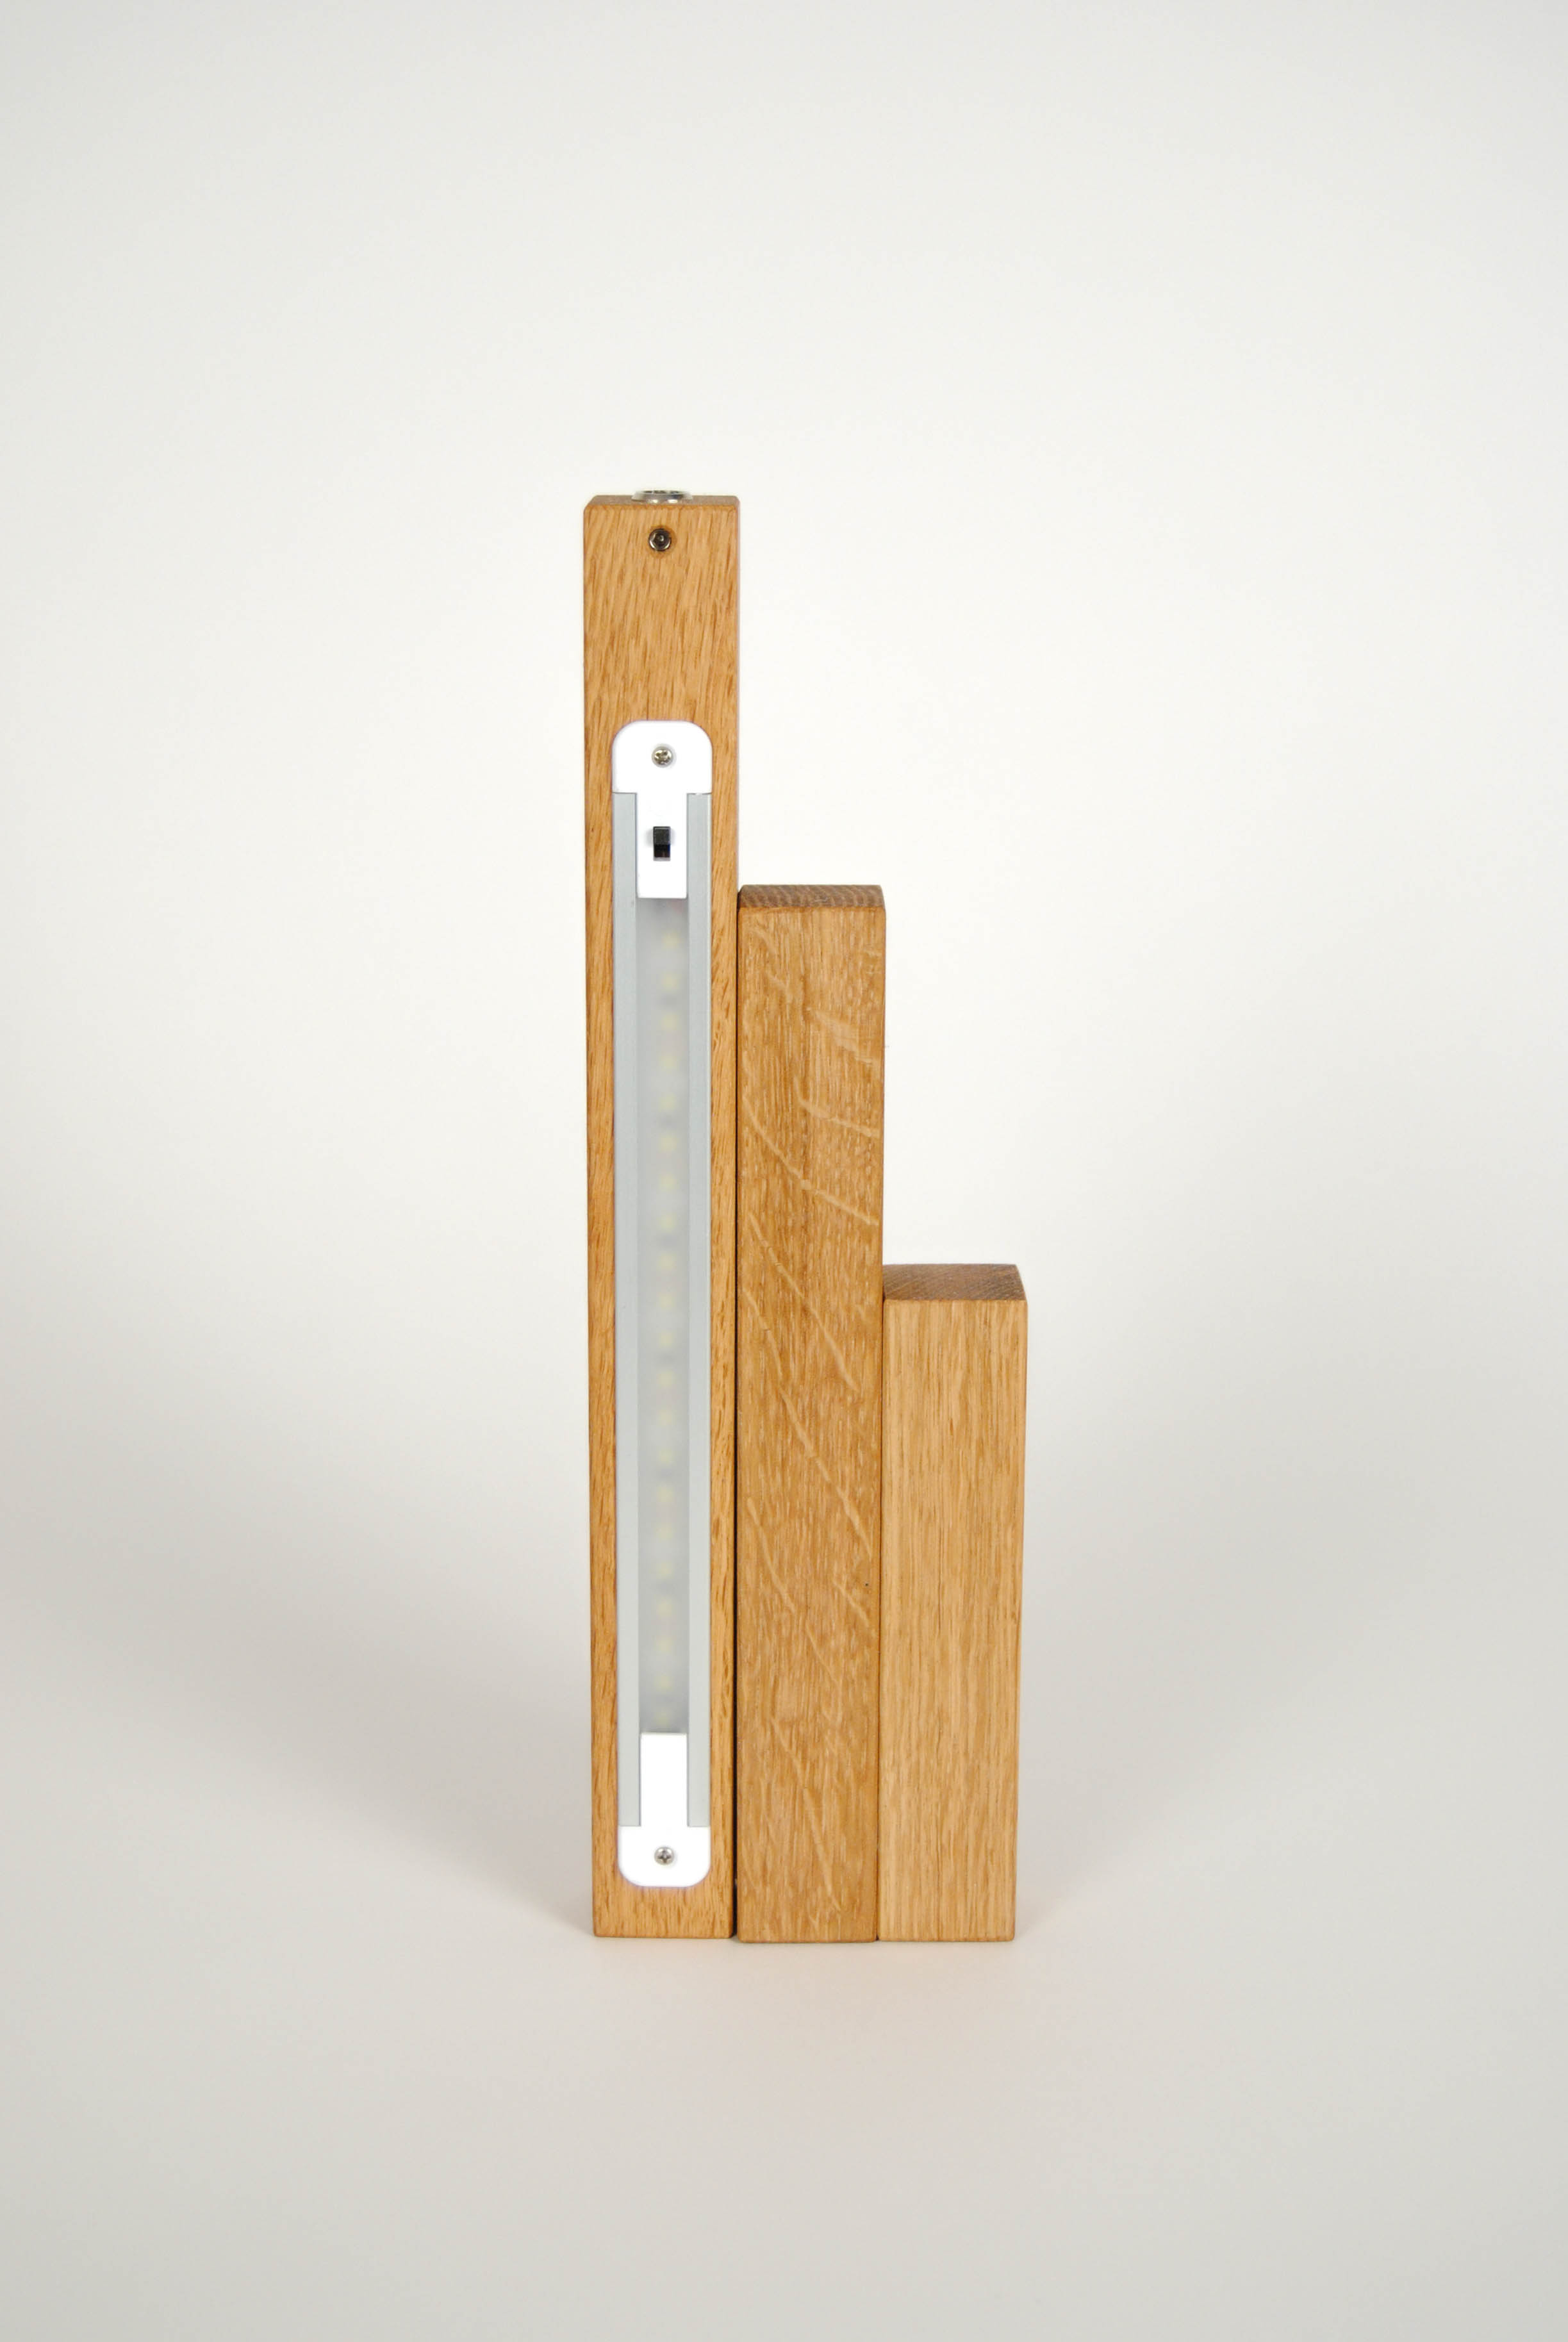 close tris lamp wooden with led light